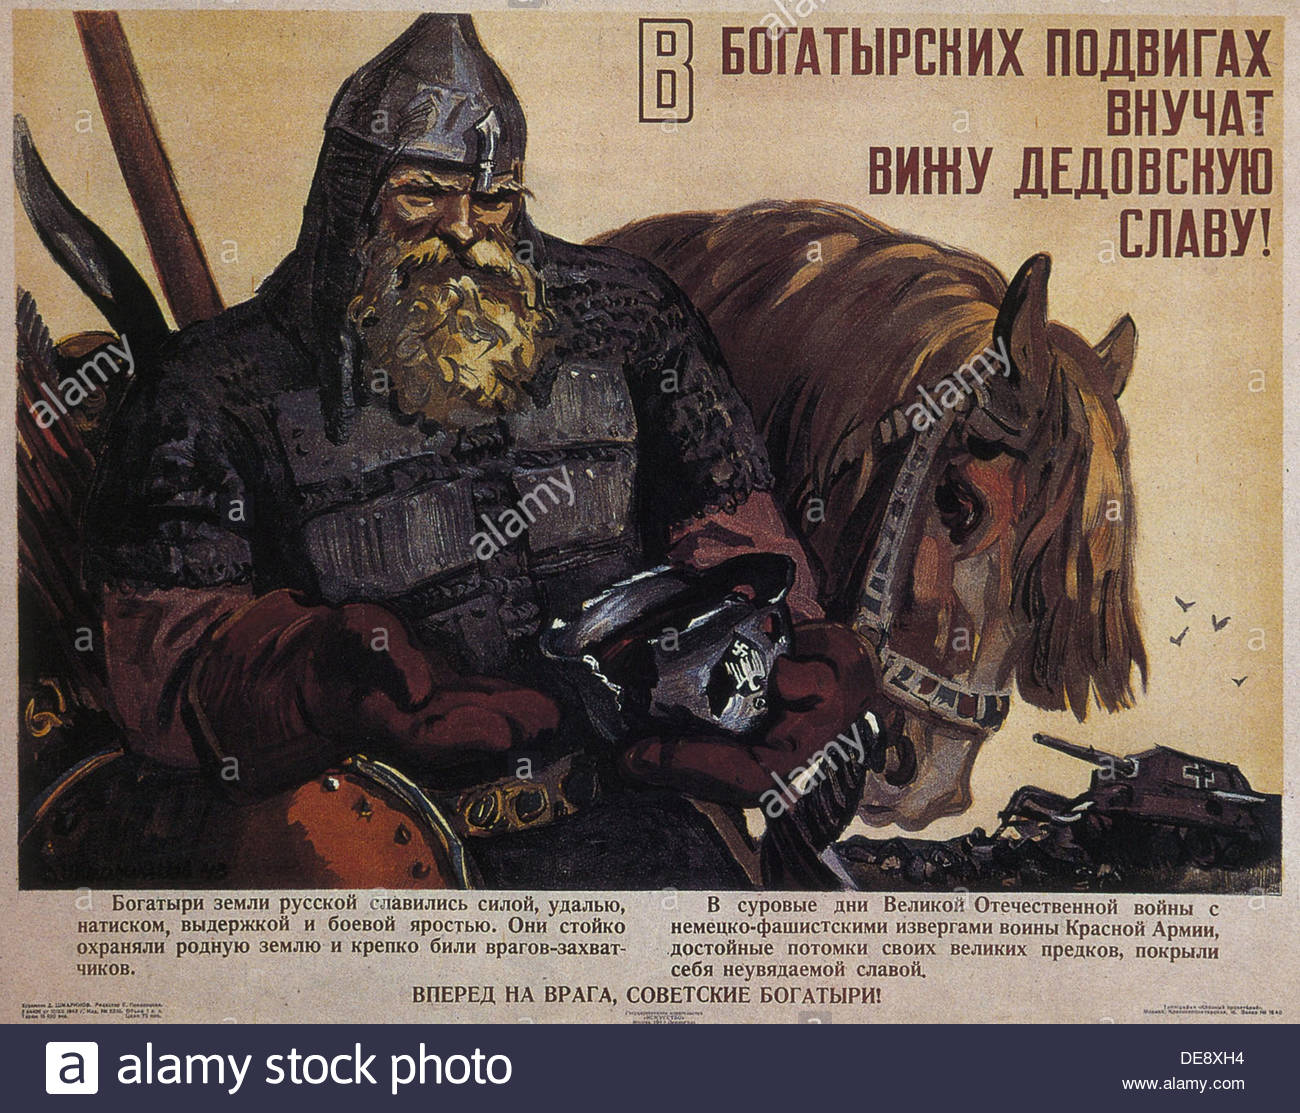 In the heroic deeds of the grandsons I see the glory of the grandfathers!, 1943. Artist: Shmarinov, Dementi Alexeevich (1907-199 - Stock Image